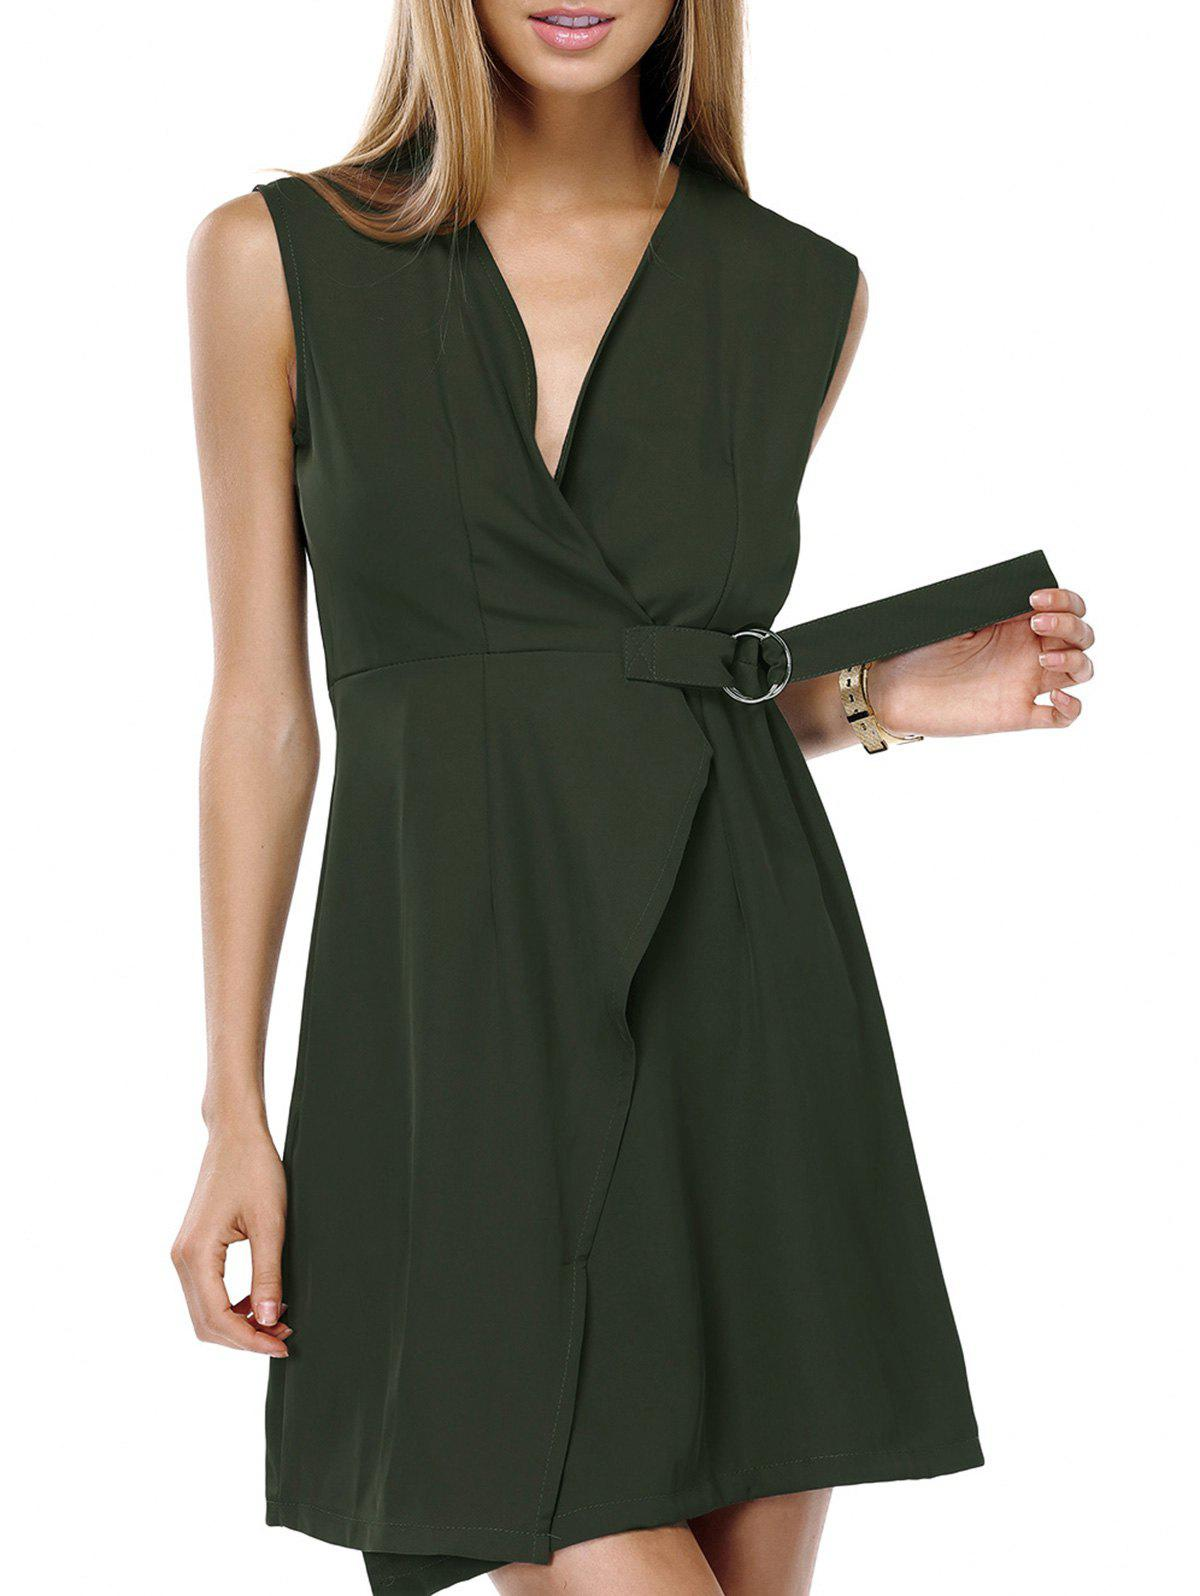 Stylish Women's V-Neck Solid Color Wrap Dress - ARMY GREEN M